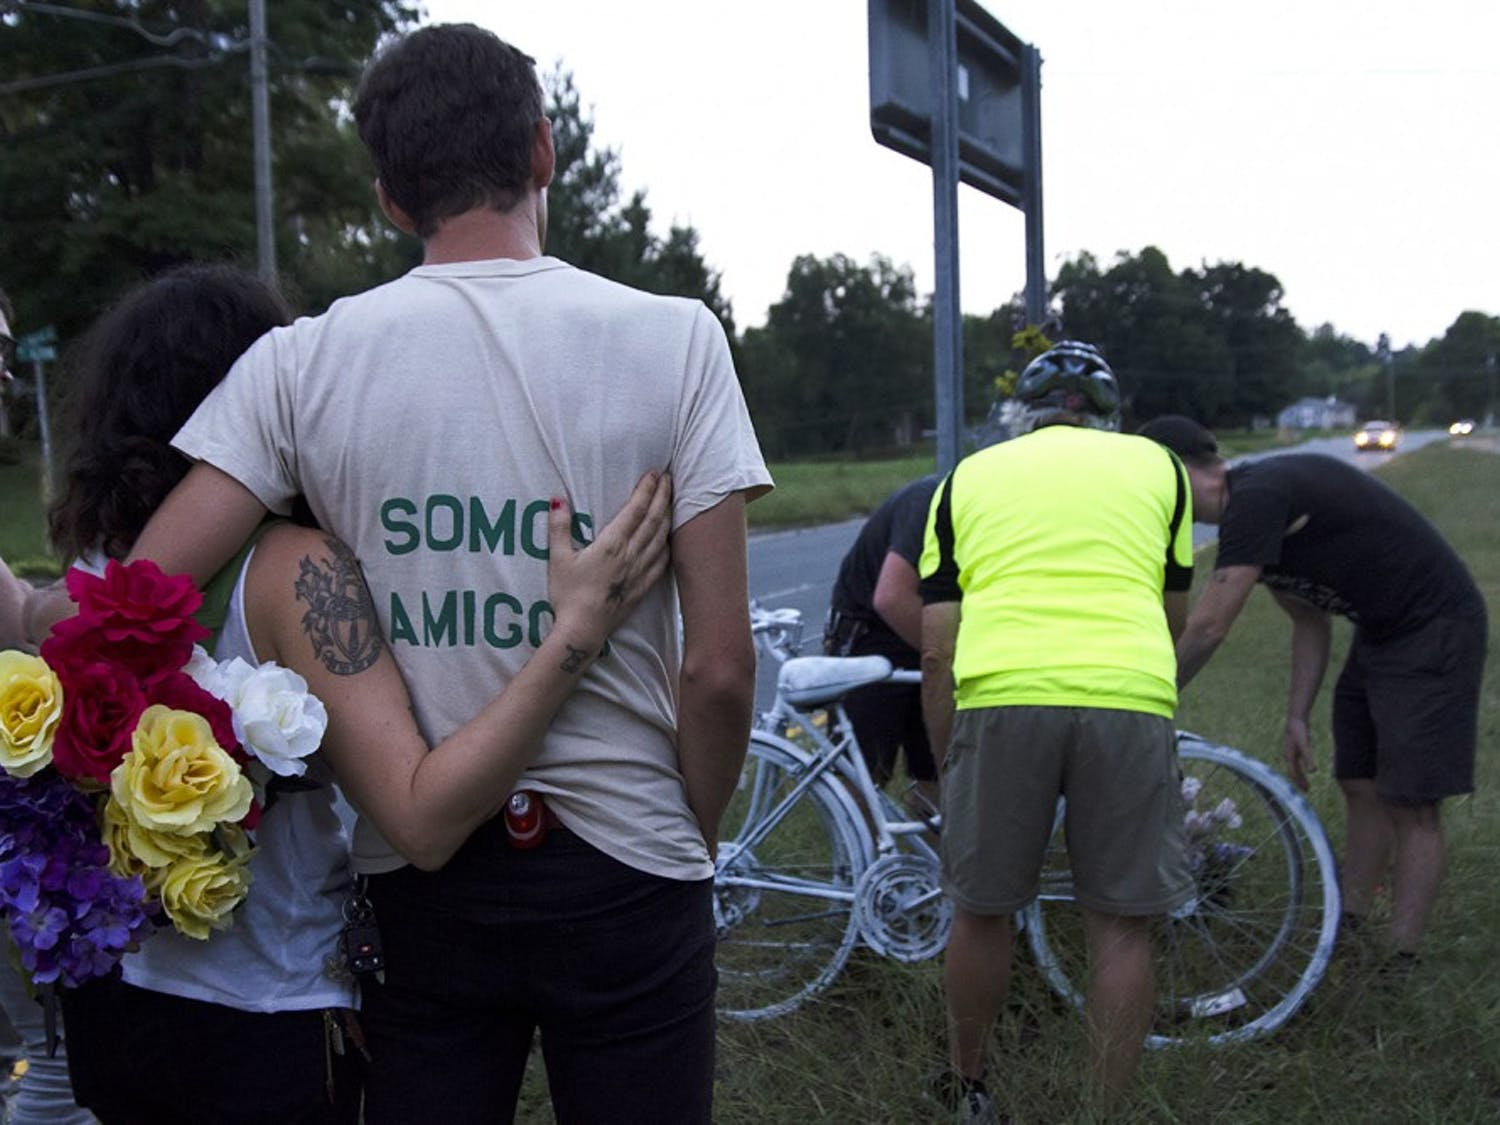 """A year ago on Friday, two cyclists were struck and killed on 15-501. In memorial, their friends painted two bicycles and rode out to the site to decorate them. Jason Merrill, from Back Alley Bikes, painted the two bicycles and helped to organize the ride. He explained that """"anytime cyclists are struck, it definitely hits close to home."""""""